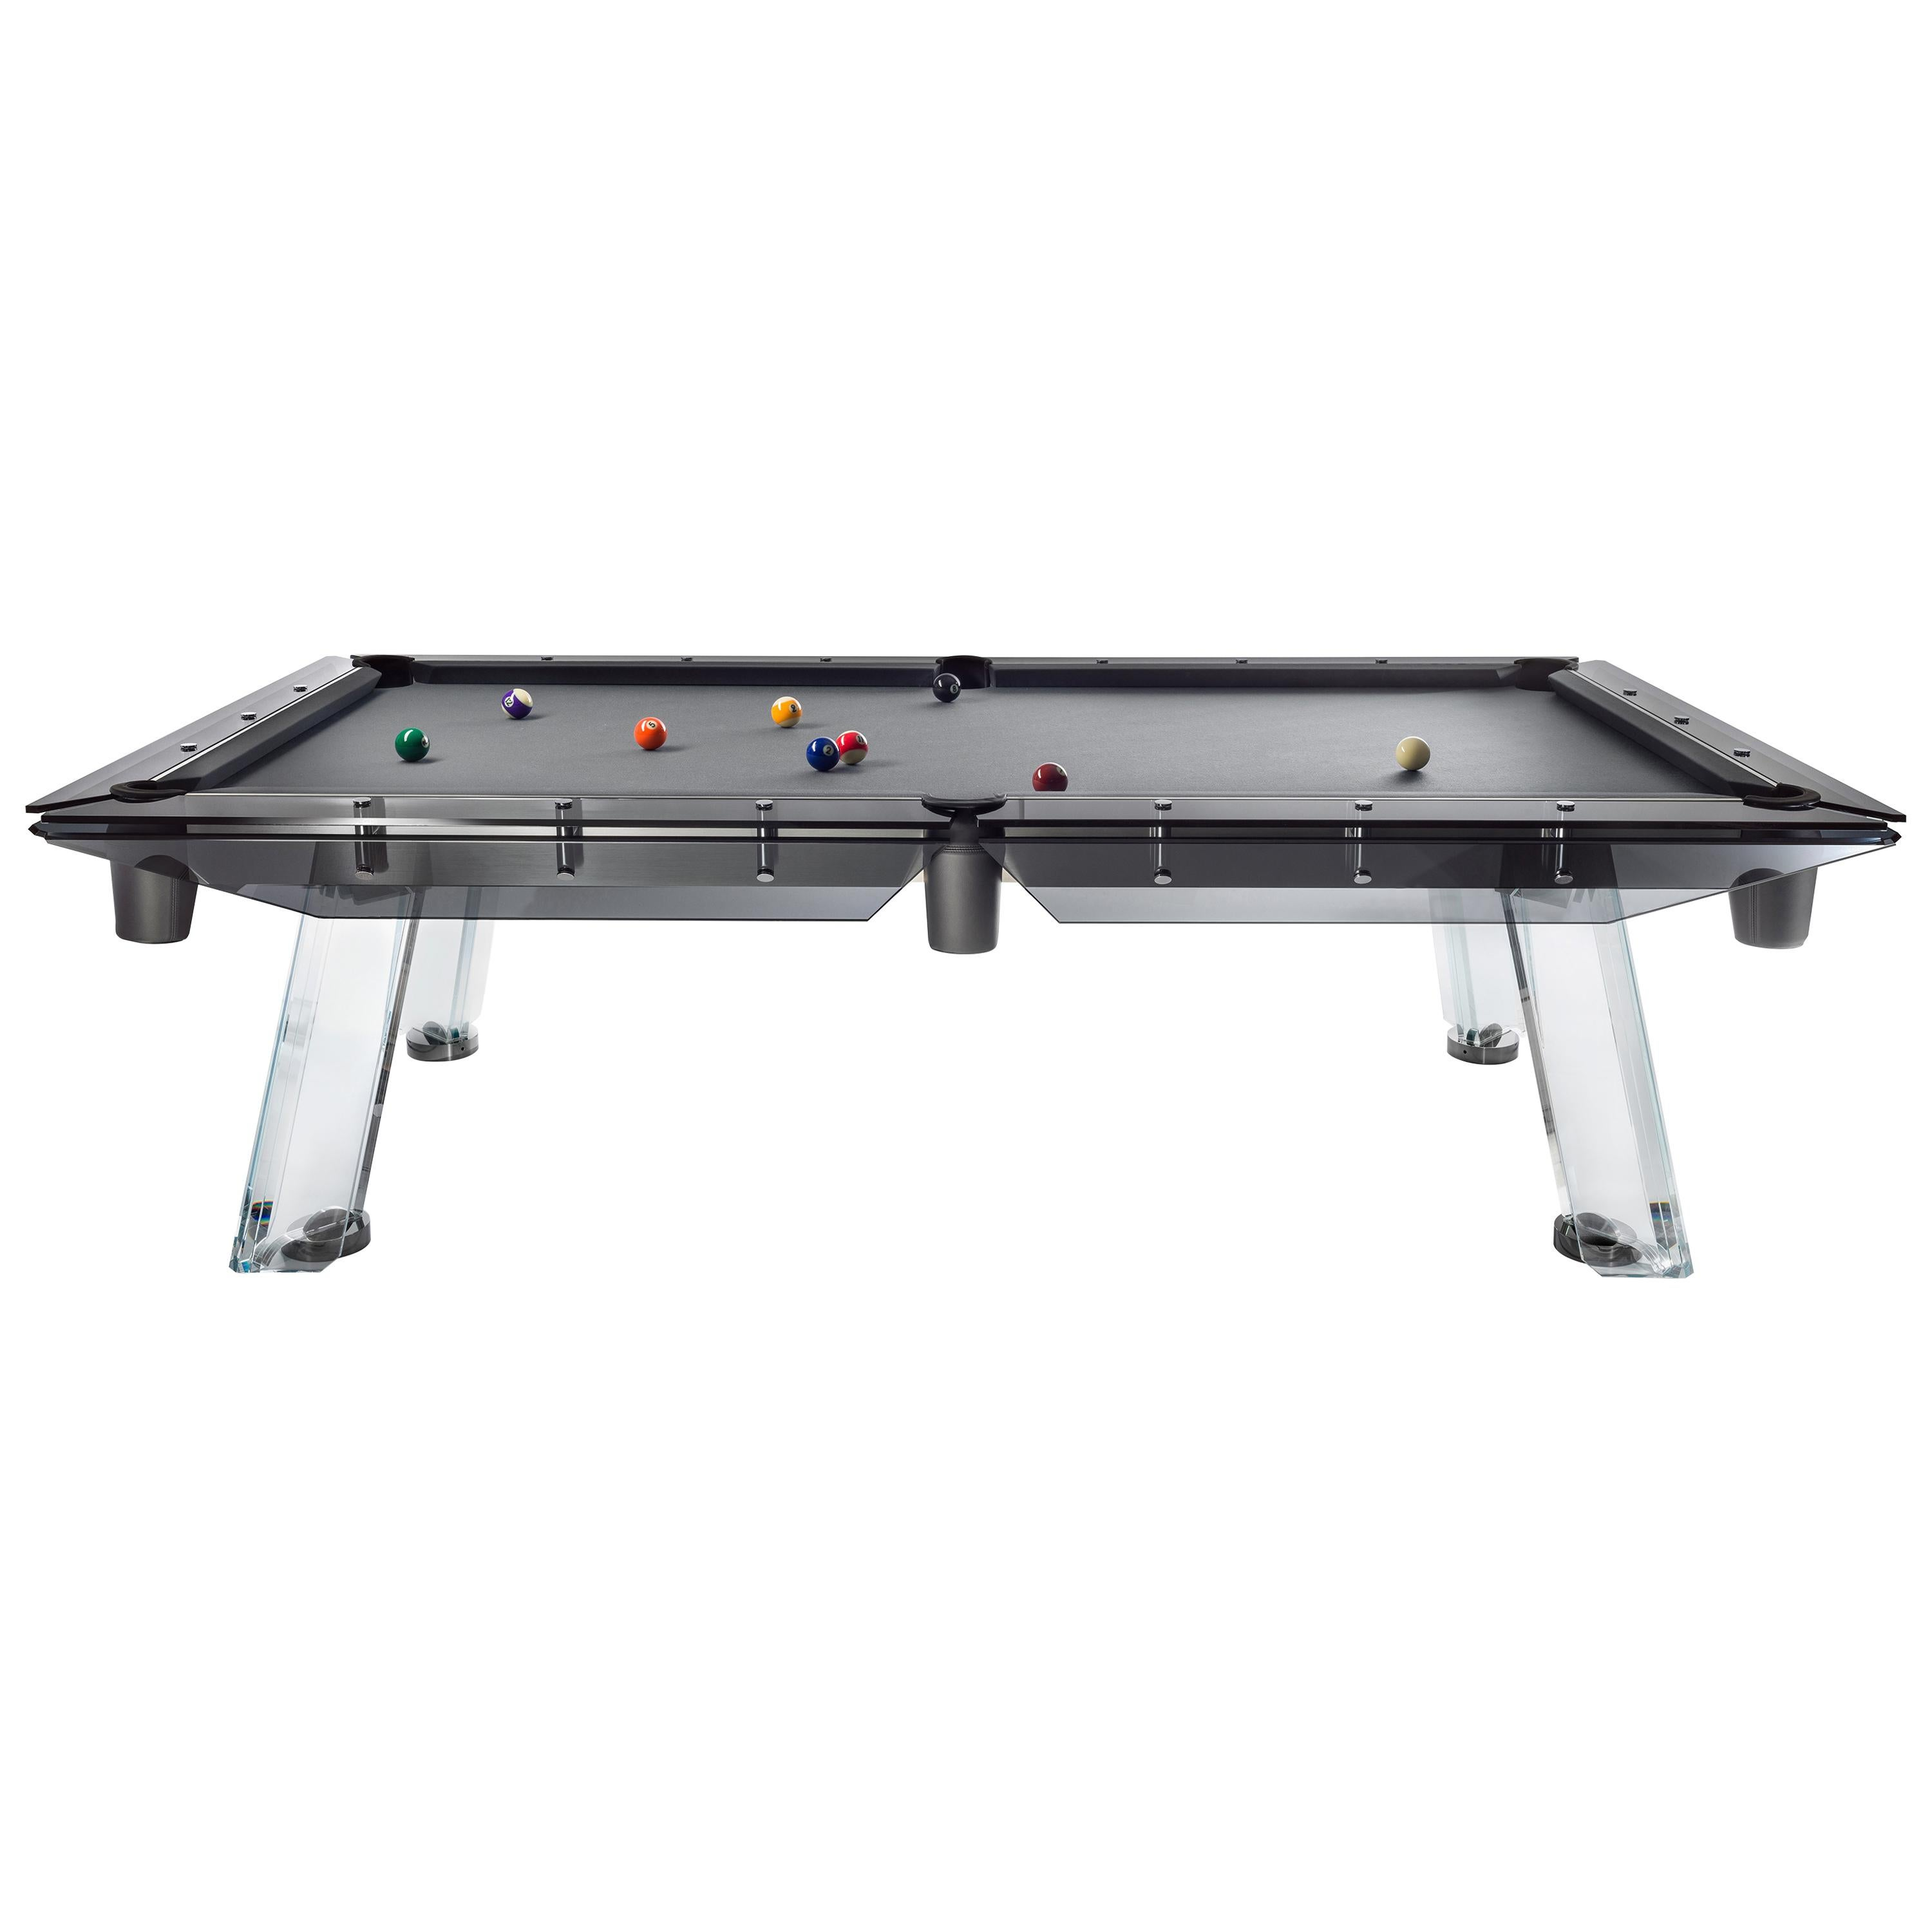 Filotto Modern Glass POOL Table with Smoked Glass and Black Nickel by Impatia